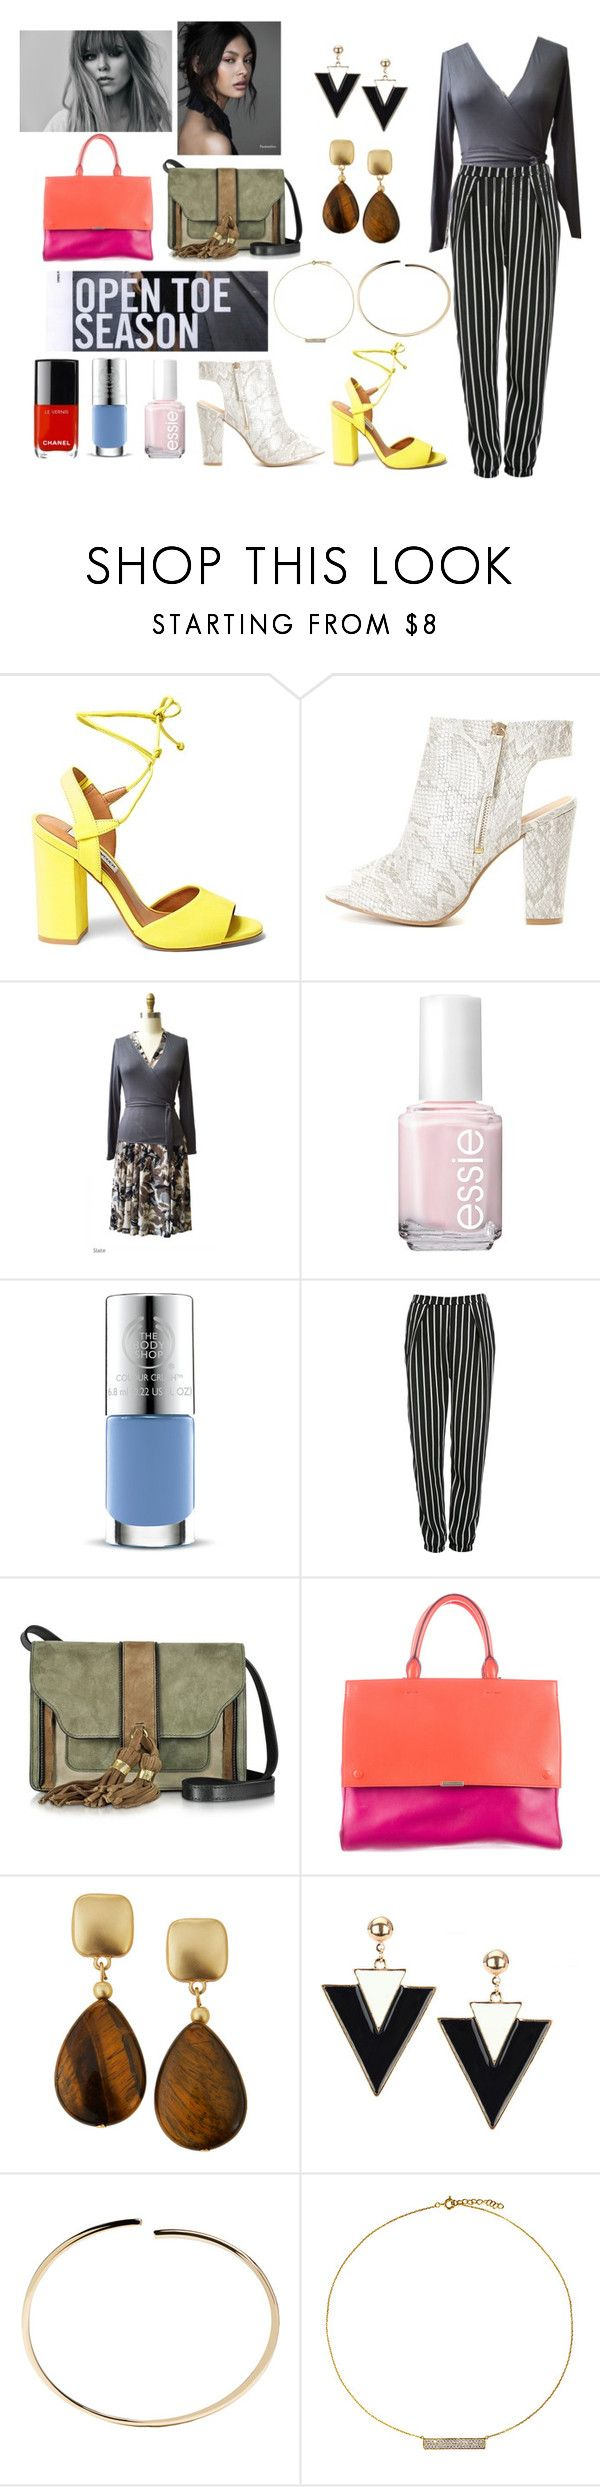 """""""Pants, Peep Toes, and Pedicures"""" by karina-dresses ❤ liked on Polyvore featuring Steve Madden, Essie, The Body Shop, Glamorous, L'Autre Chose, Victoria Beckham, Kenneth Jay Lane, Maison Margiela and Hysteric Co."""